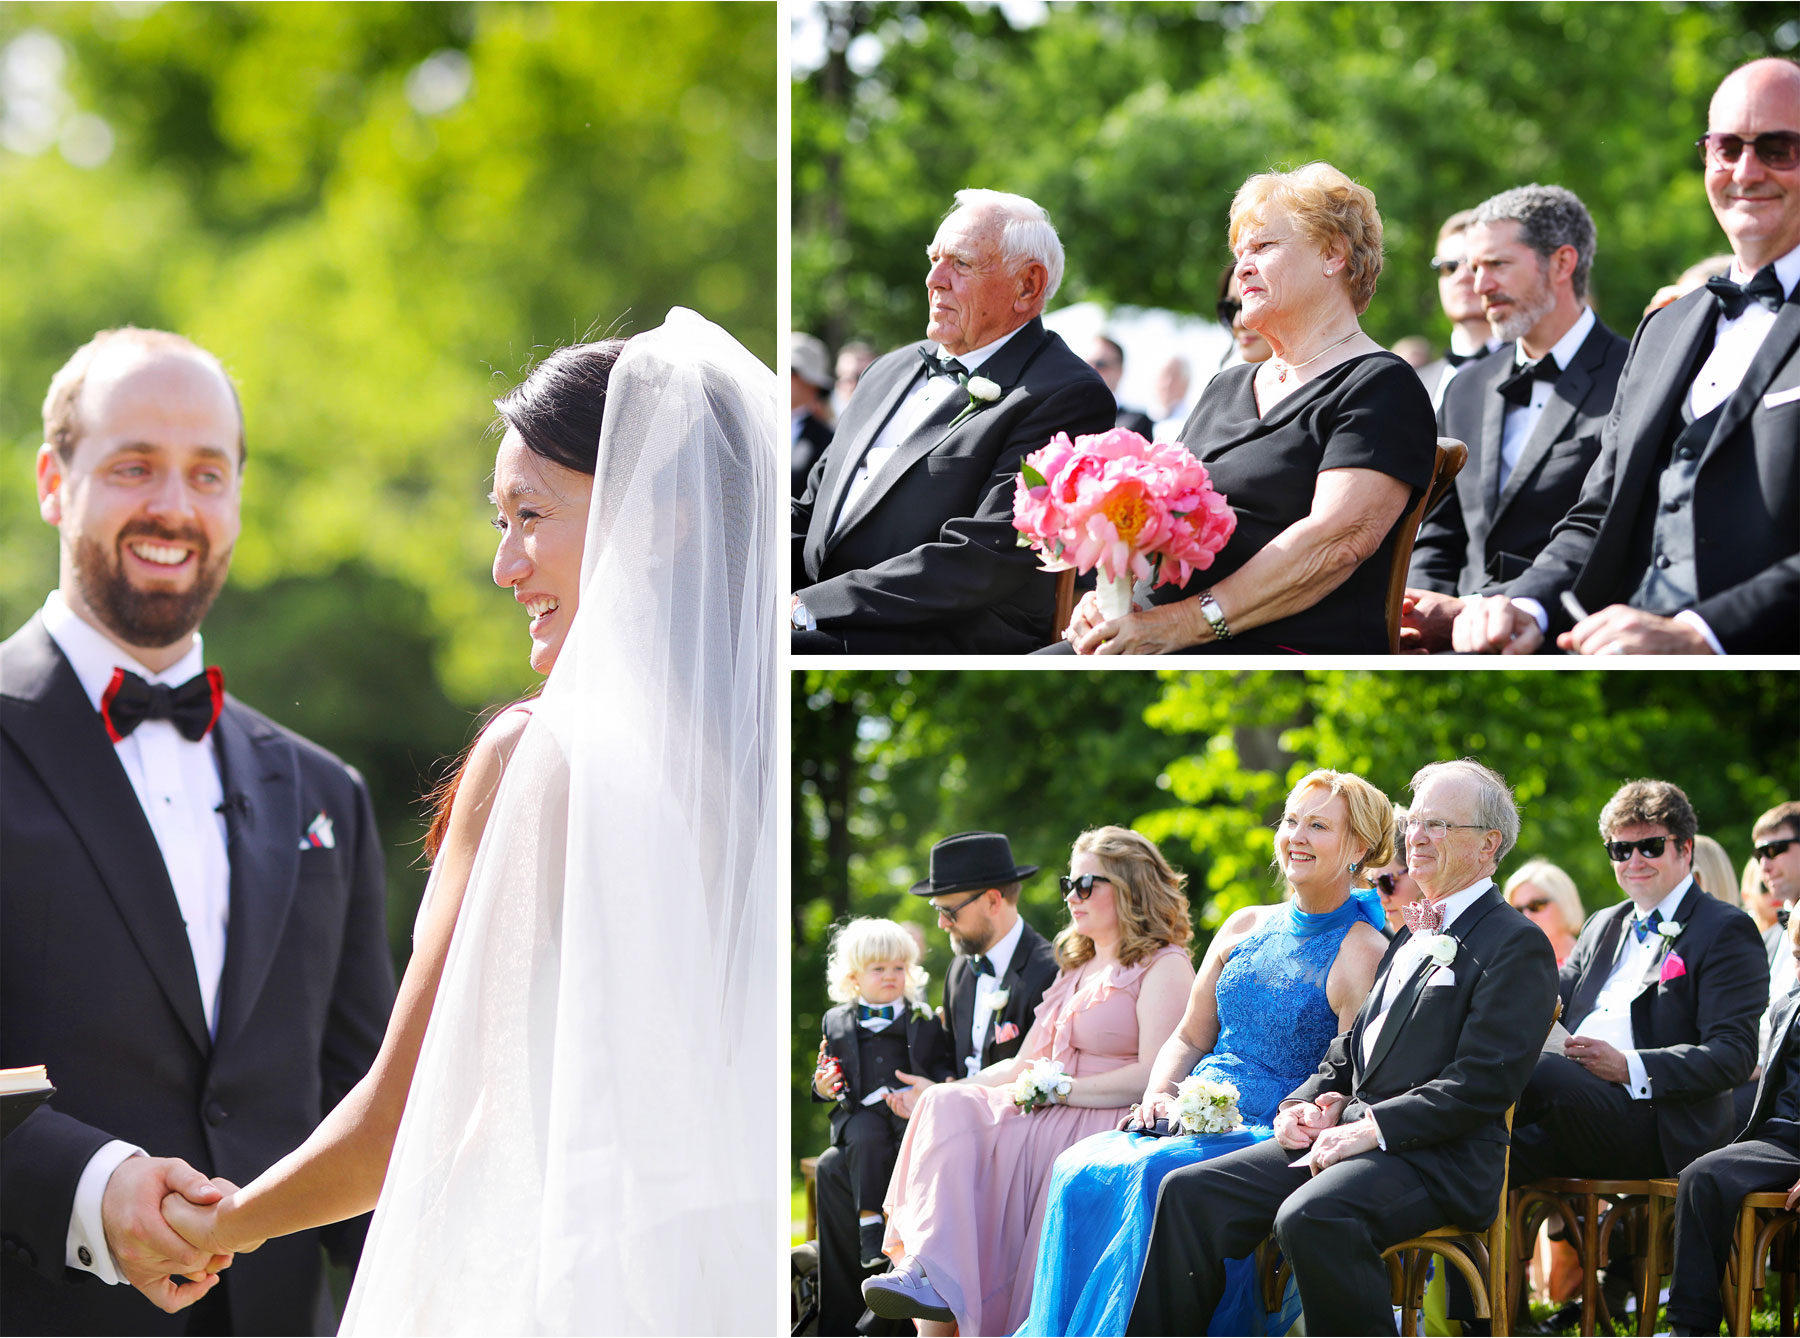 12-Vick-Photography-Wedding-Stouts-Island-Lodge-Wisconsin-Summer-Ceremony-Outdoor-Bride-Groom-Parents-MiJa-and-Lucius.jpg